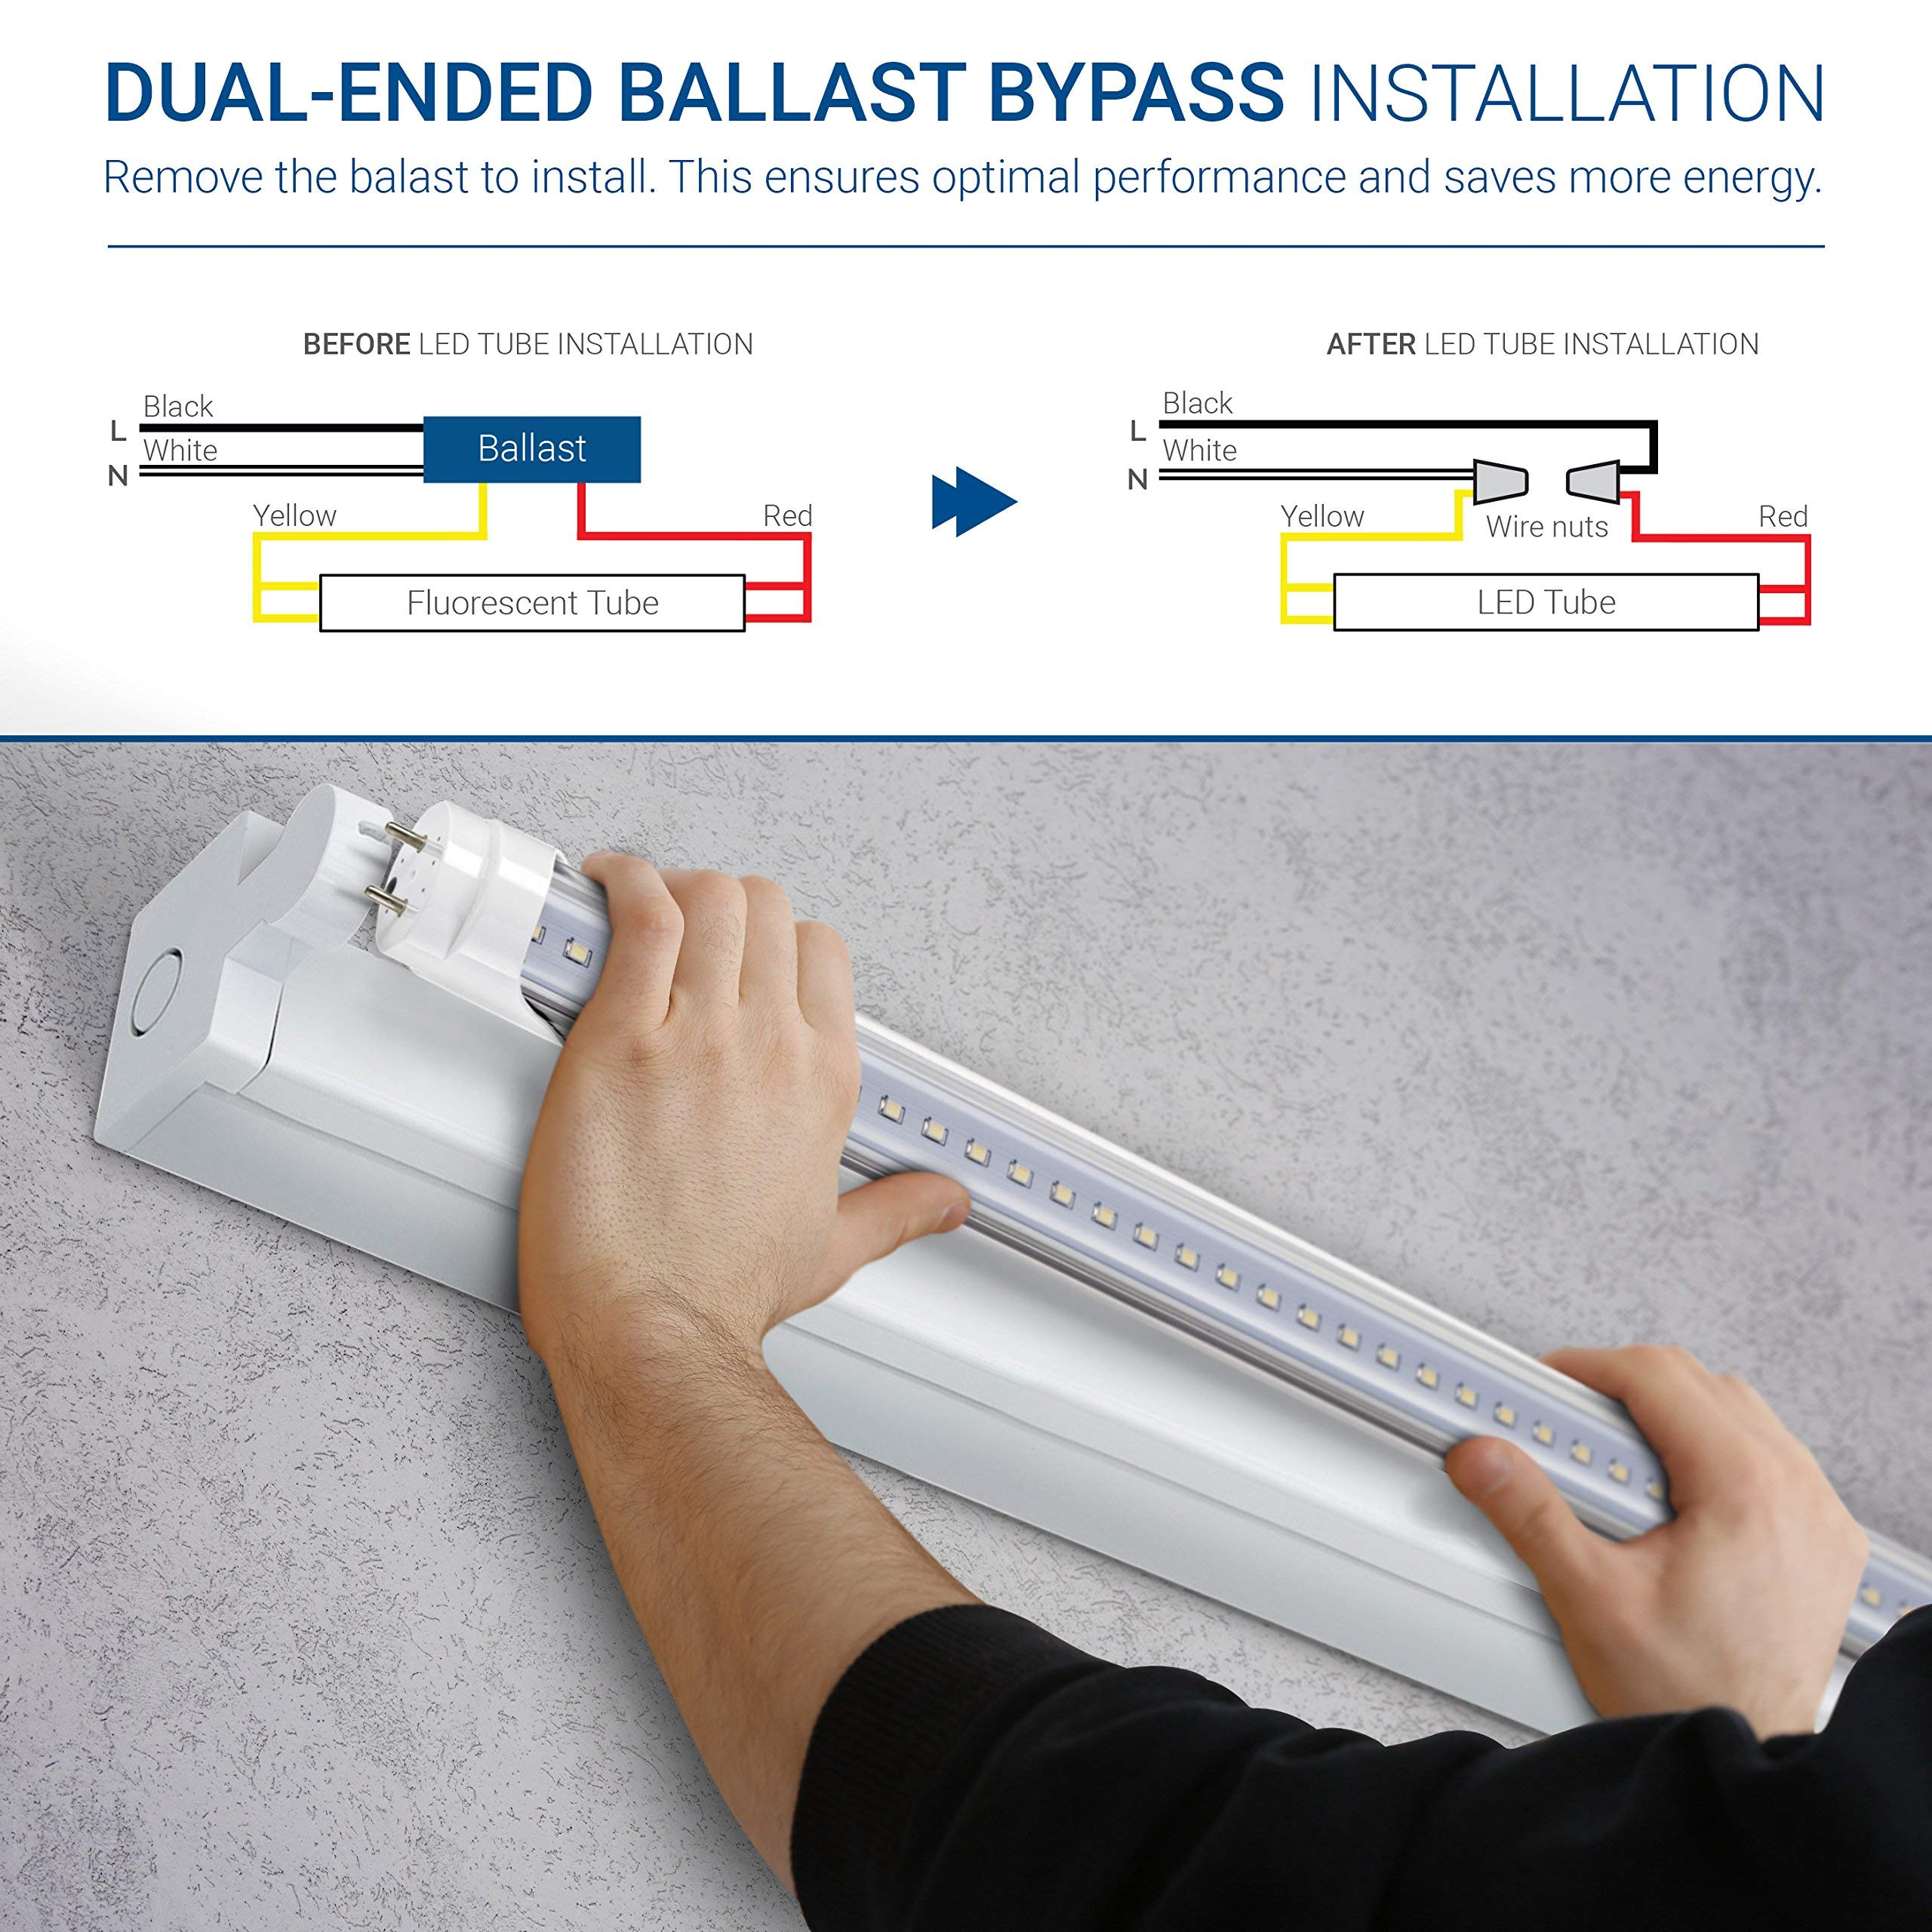 Hyperikon T8 T10 T12 LED Light Tube, 4FT, Dual-End Powered, Easy Ballast Removal Installation, 18W (48W Equivalent), 2340 Lumens, 6000K (Super Bright White), Clear Cover, DLC & UL - (4 Pack) by Hyperikon (Image #4)